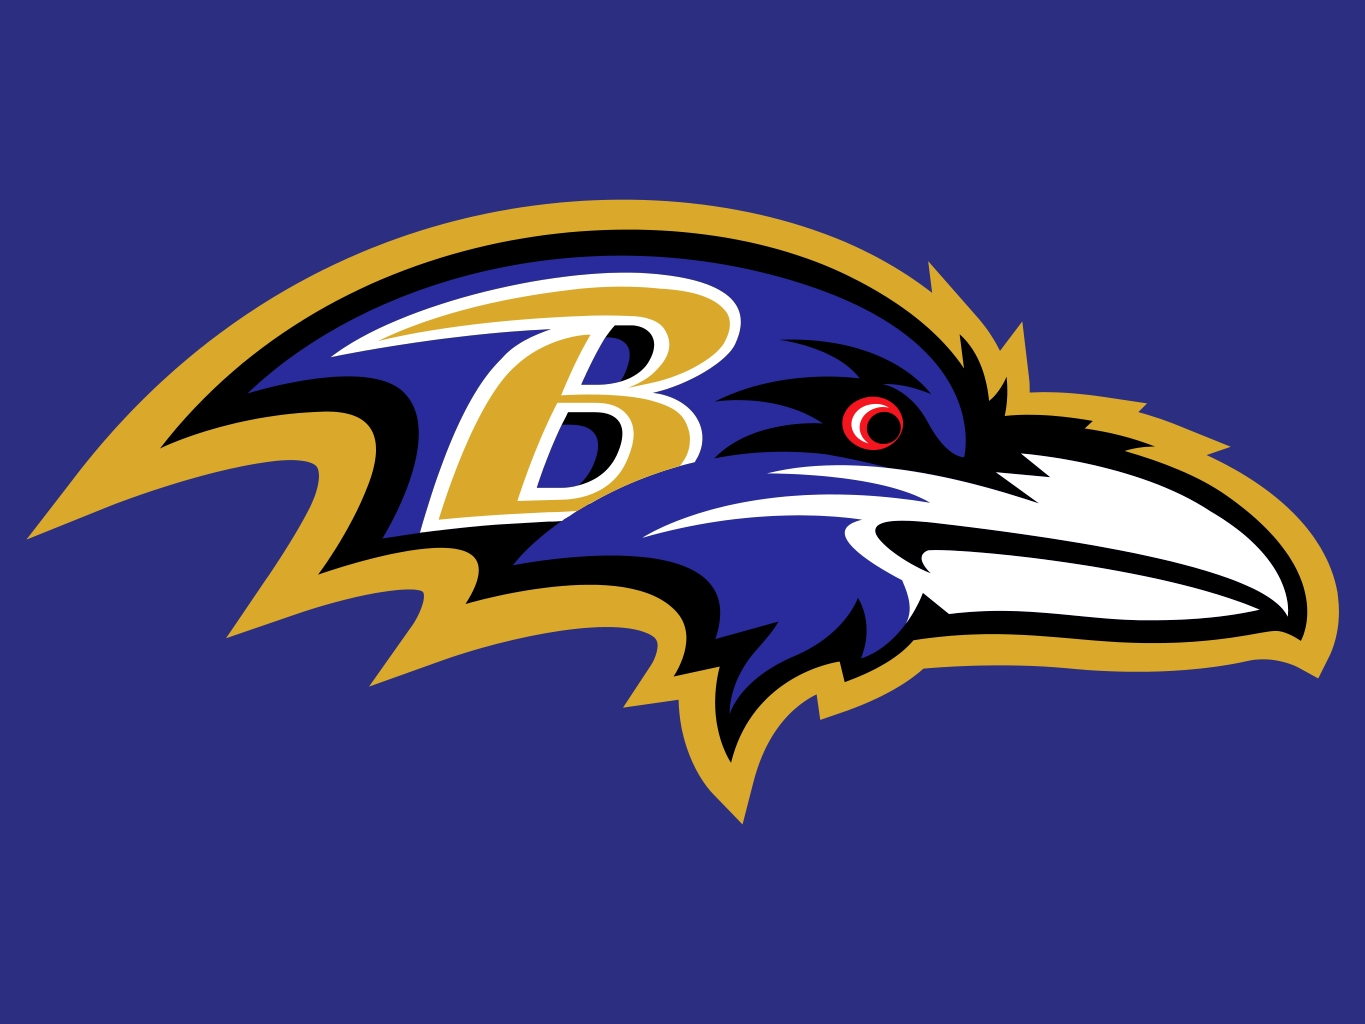 Baltimore Ravens Wallpaper Desktop h975119 Sports HD Wallpaper 1365x1024